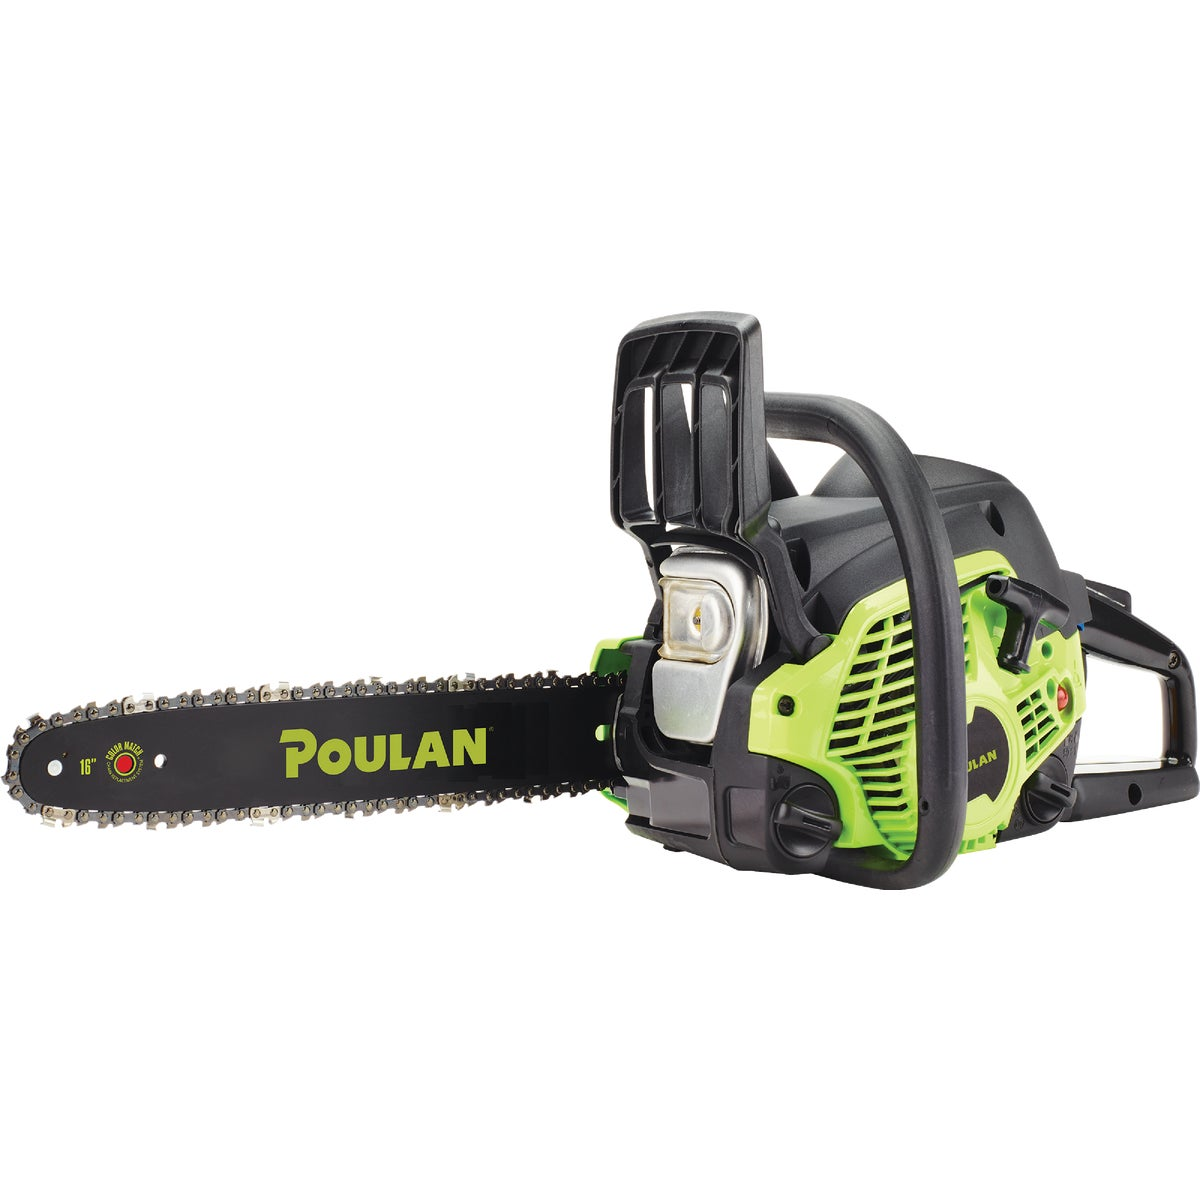 "16"" 38CC GAS CHAINSAW - 967146301 by Poulan"